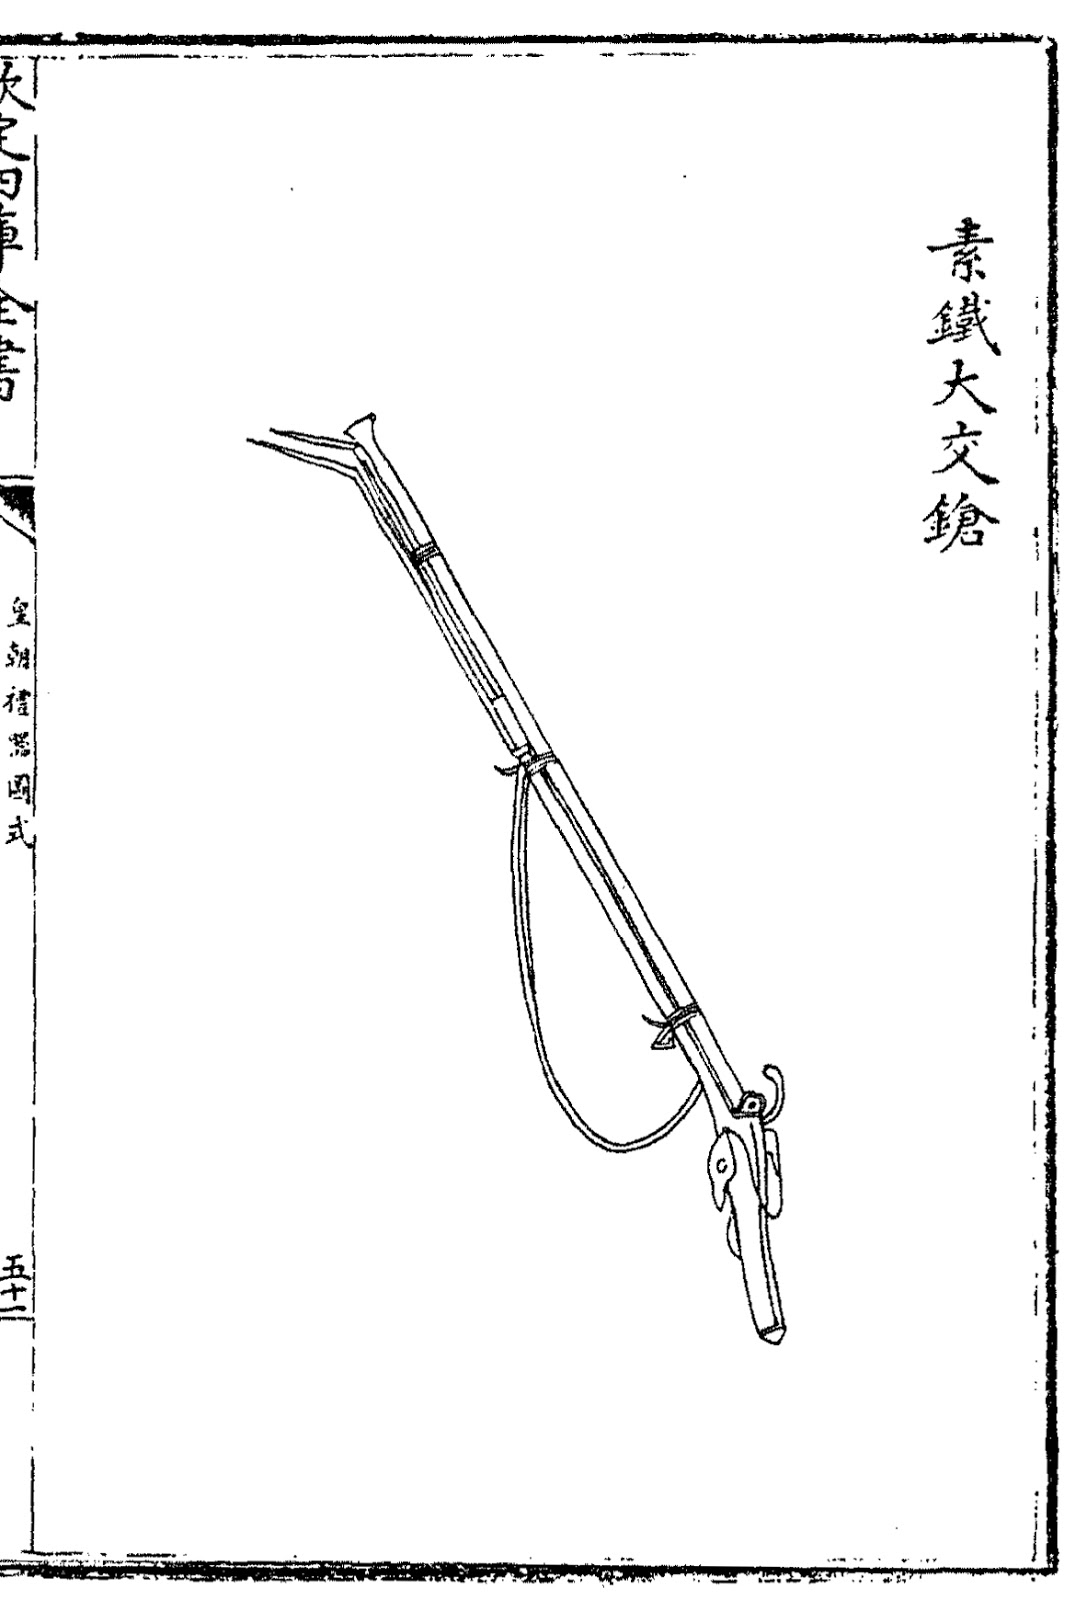 Matchlock Firearms Of The Ming Dynasty